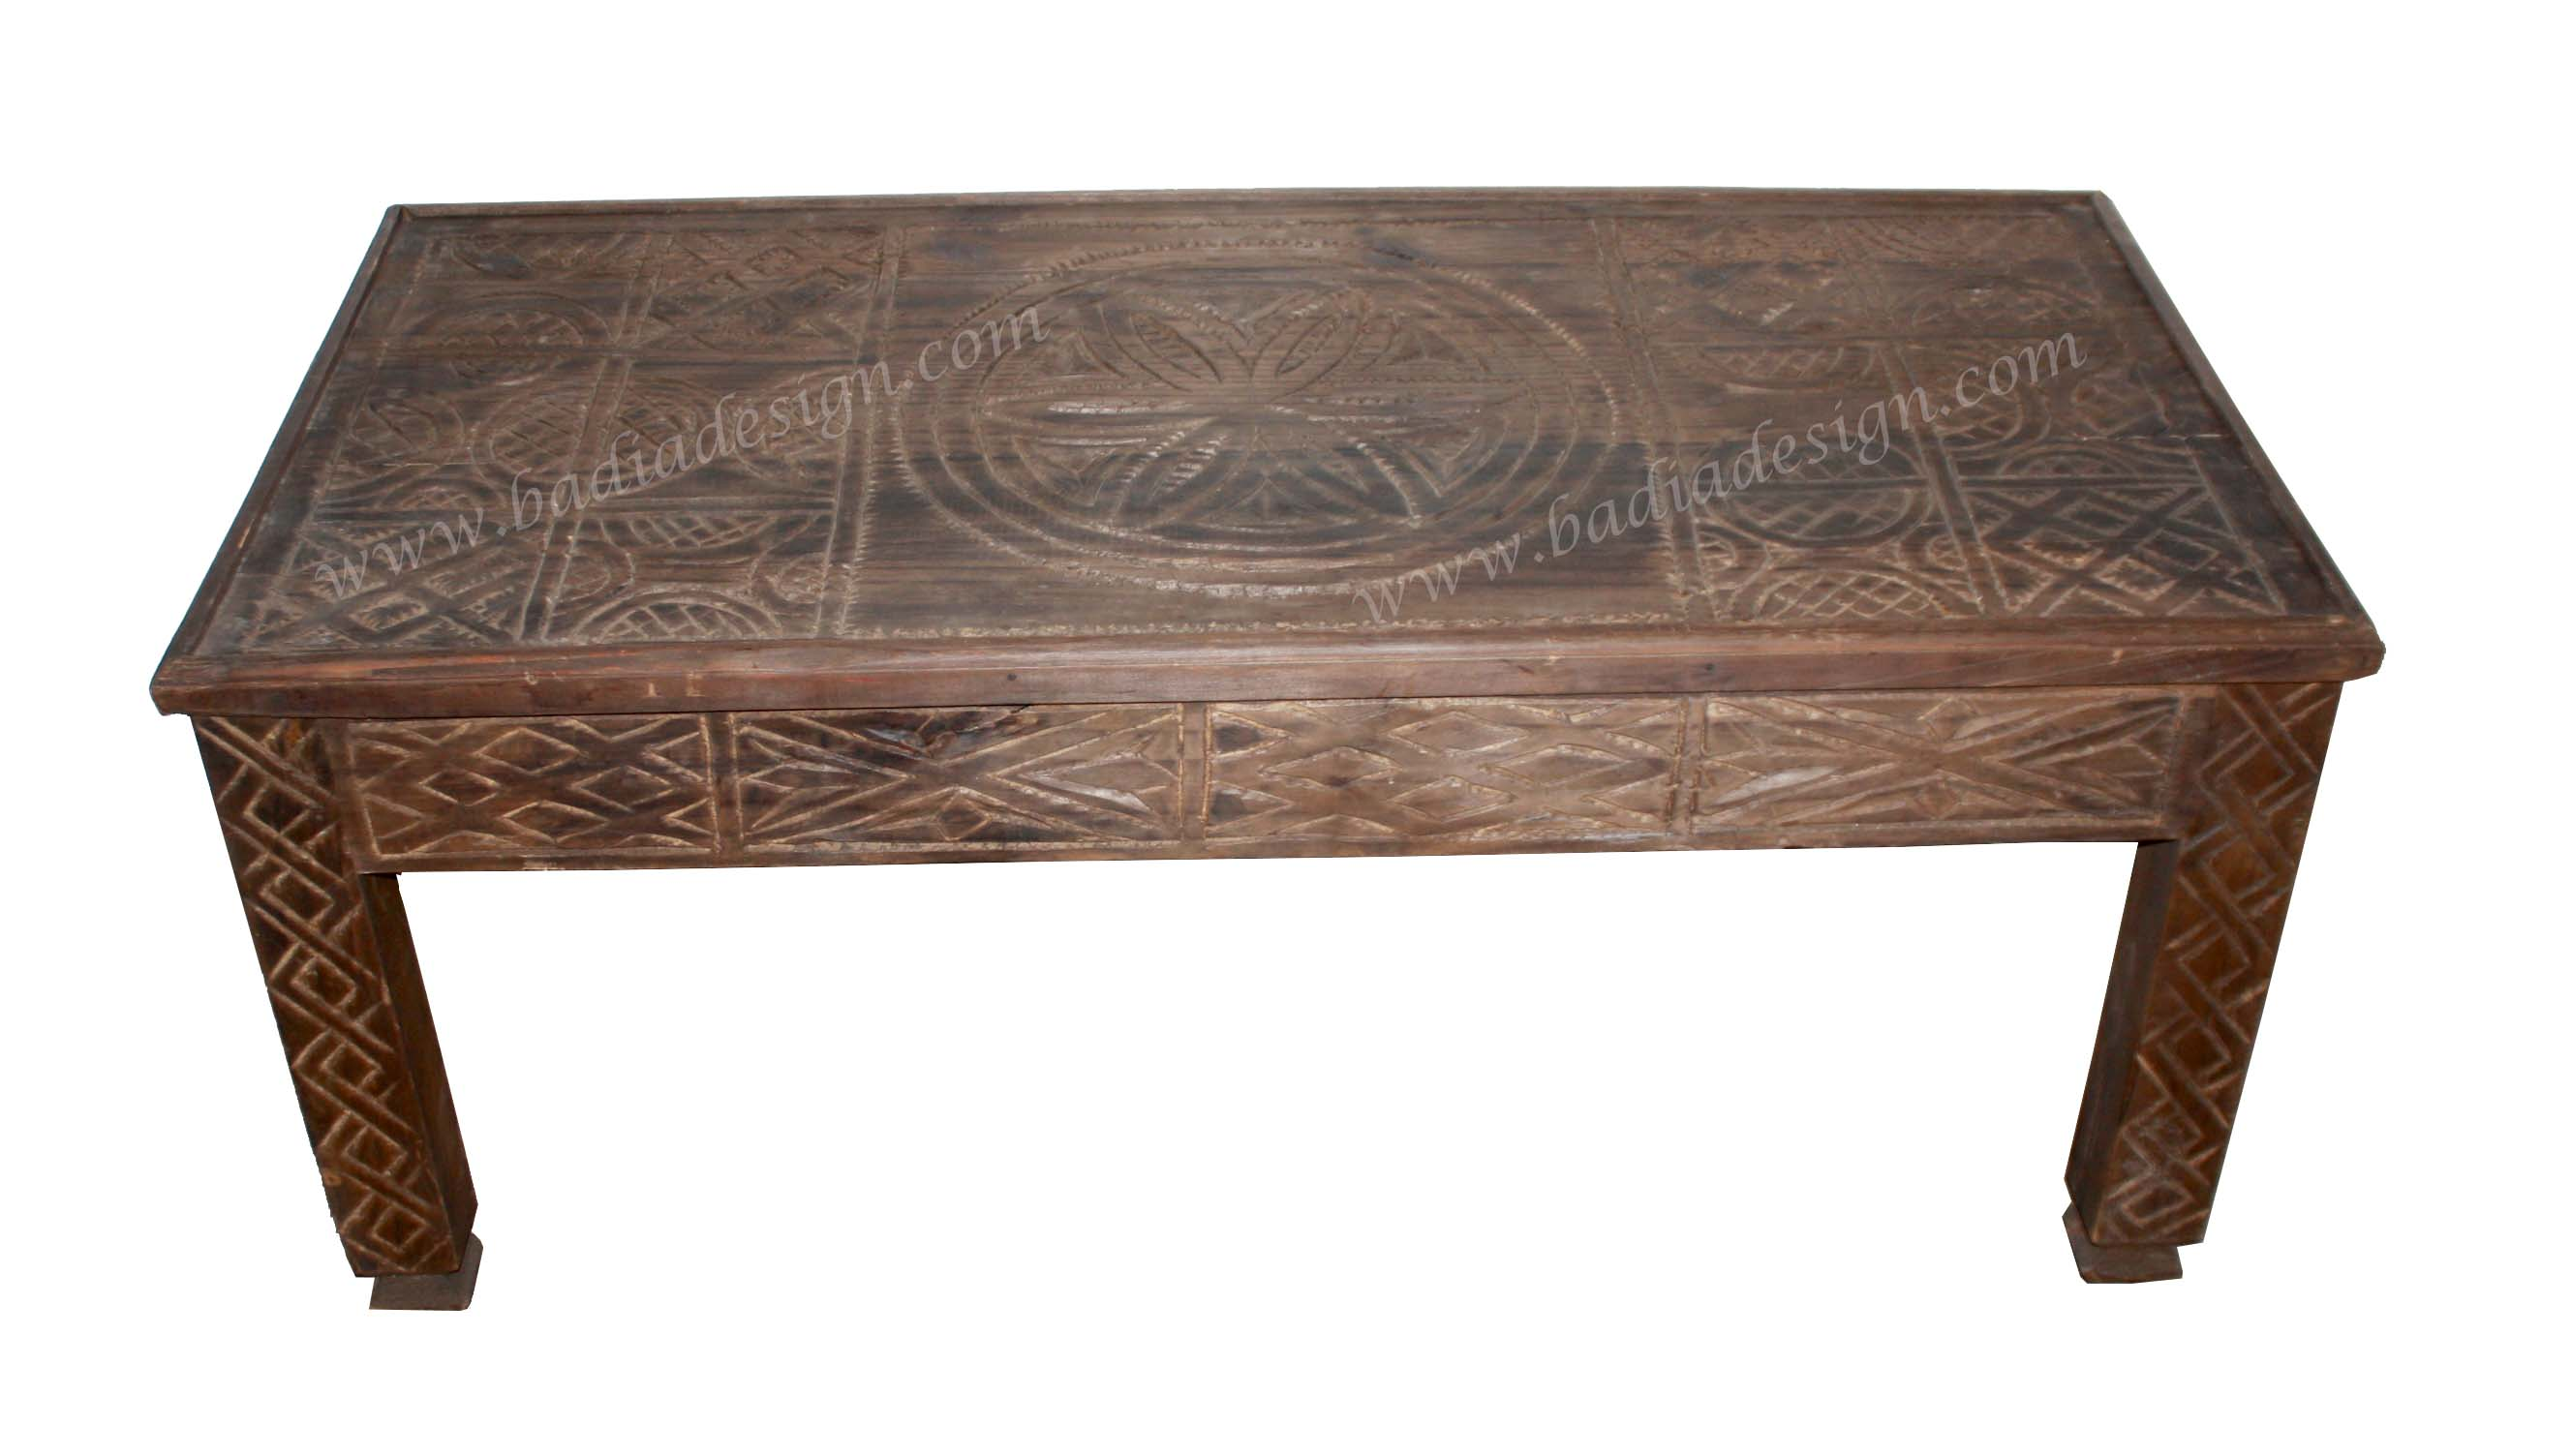 Moroccan Hand Carved Wooden Coffee Table From Badia Design